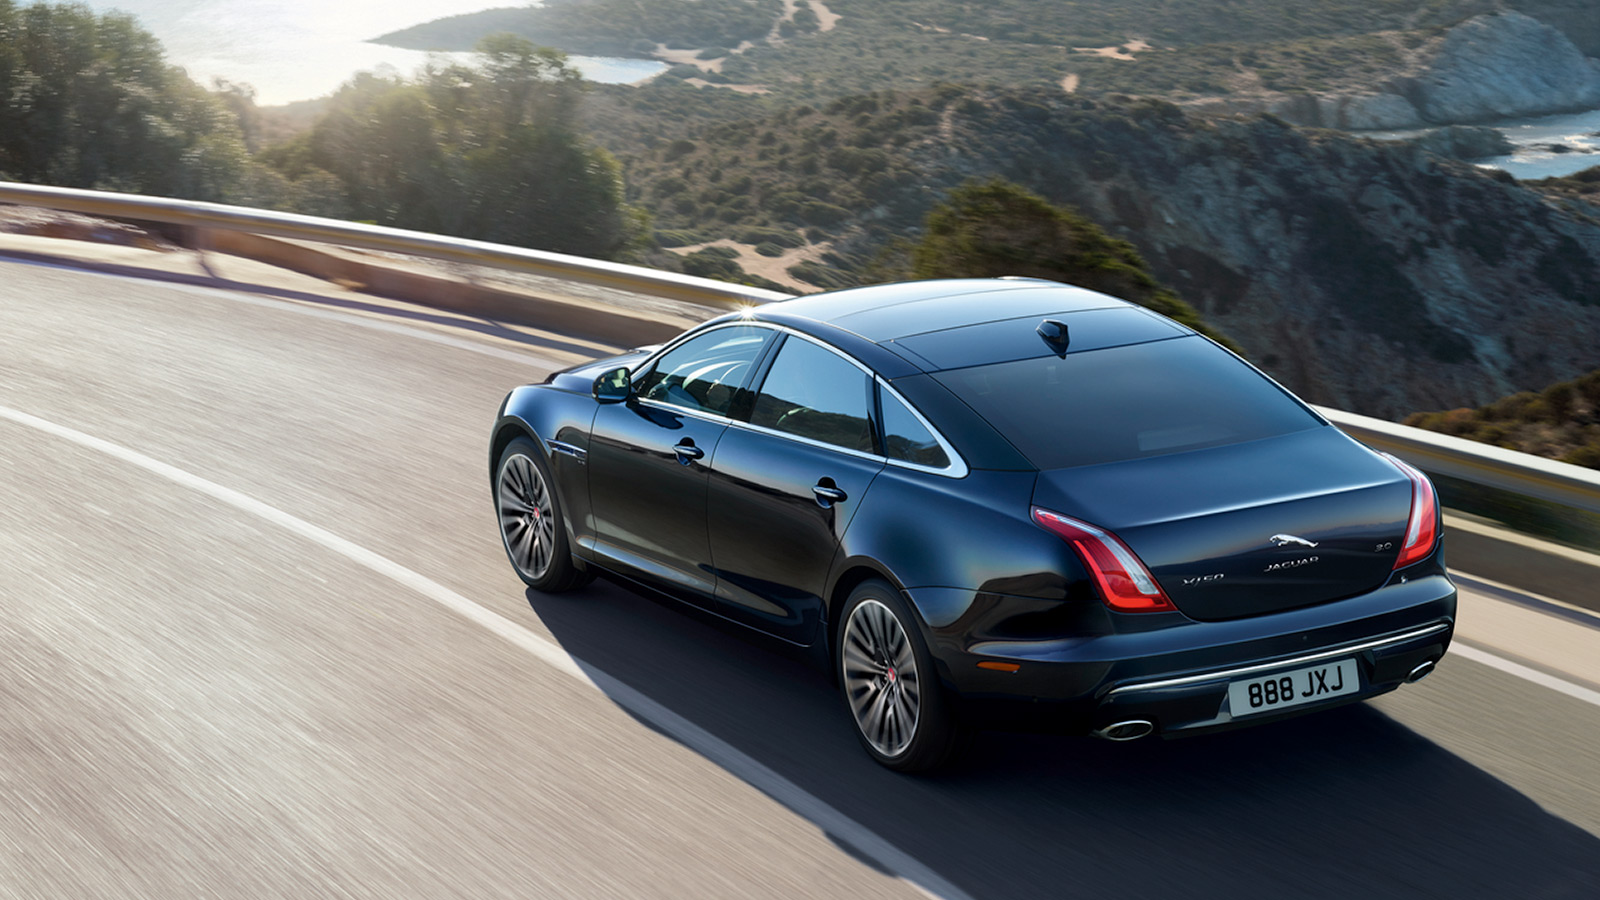 Rear view of XJ driving on road.